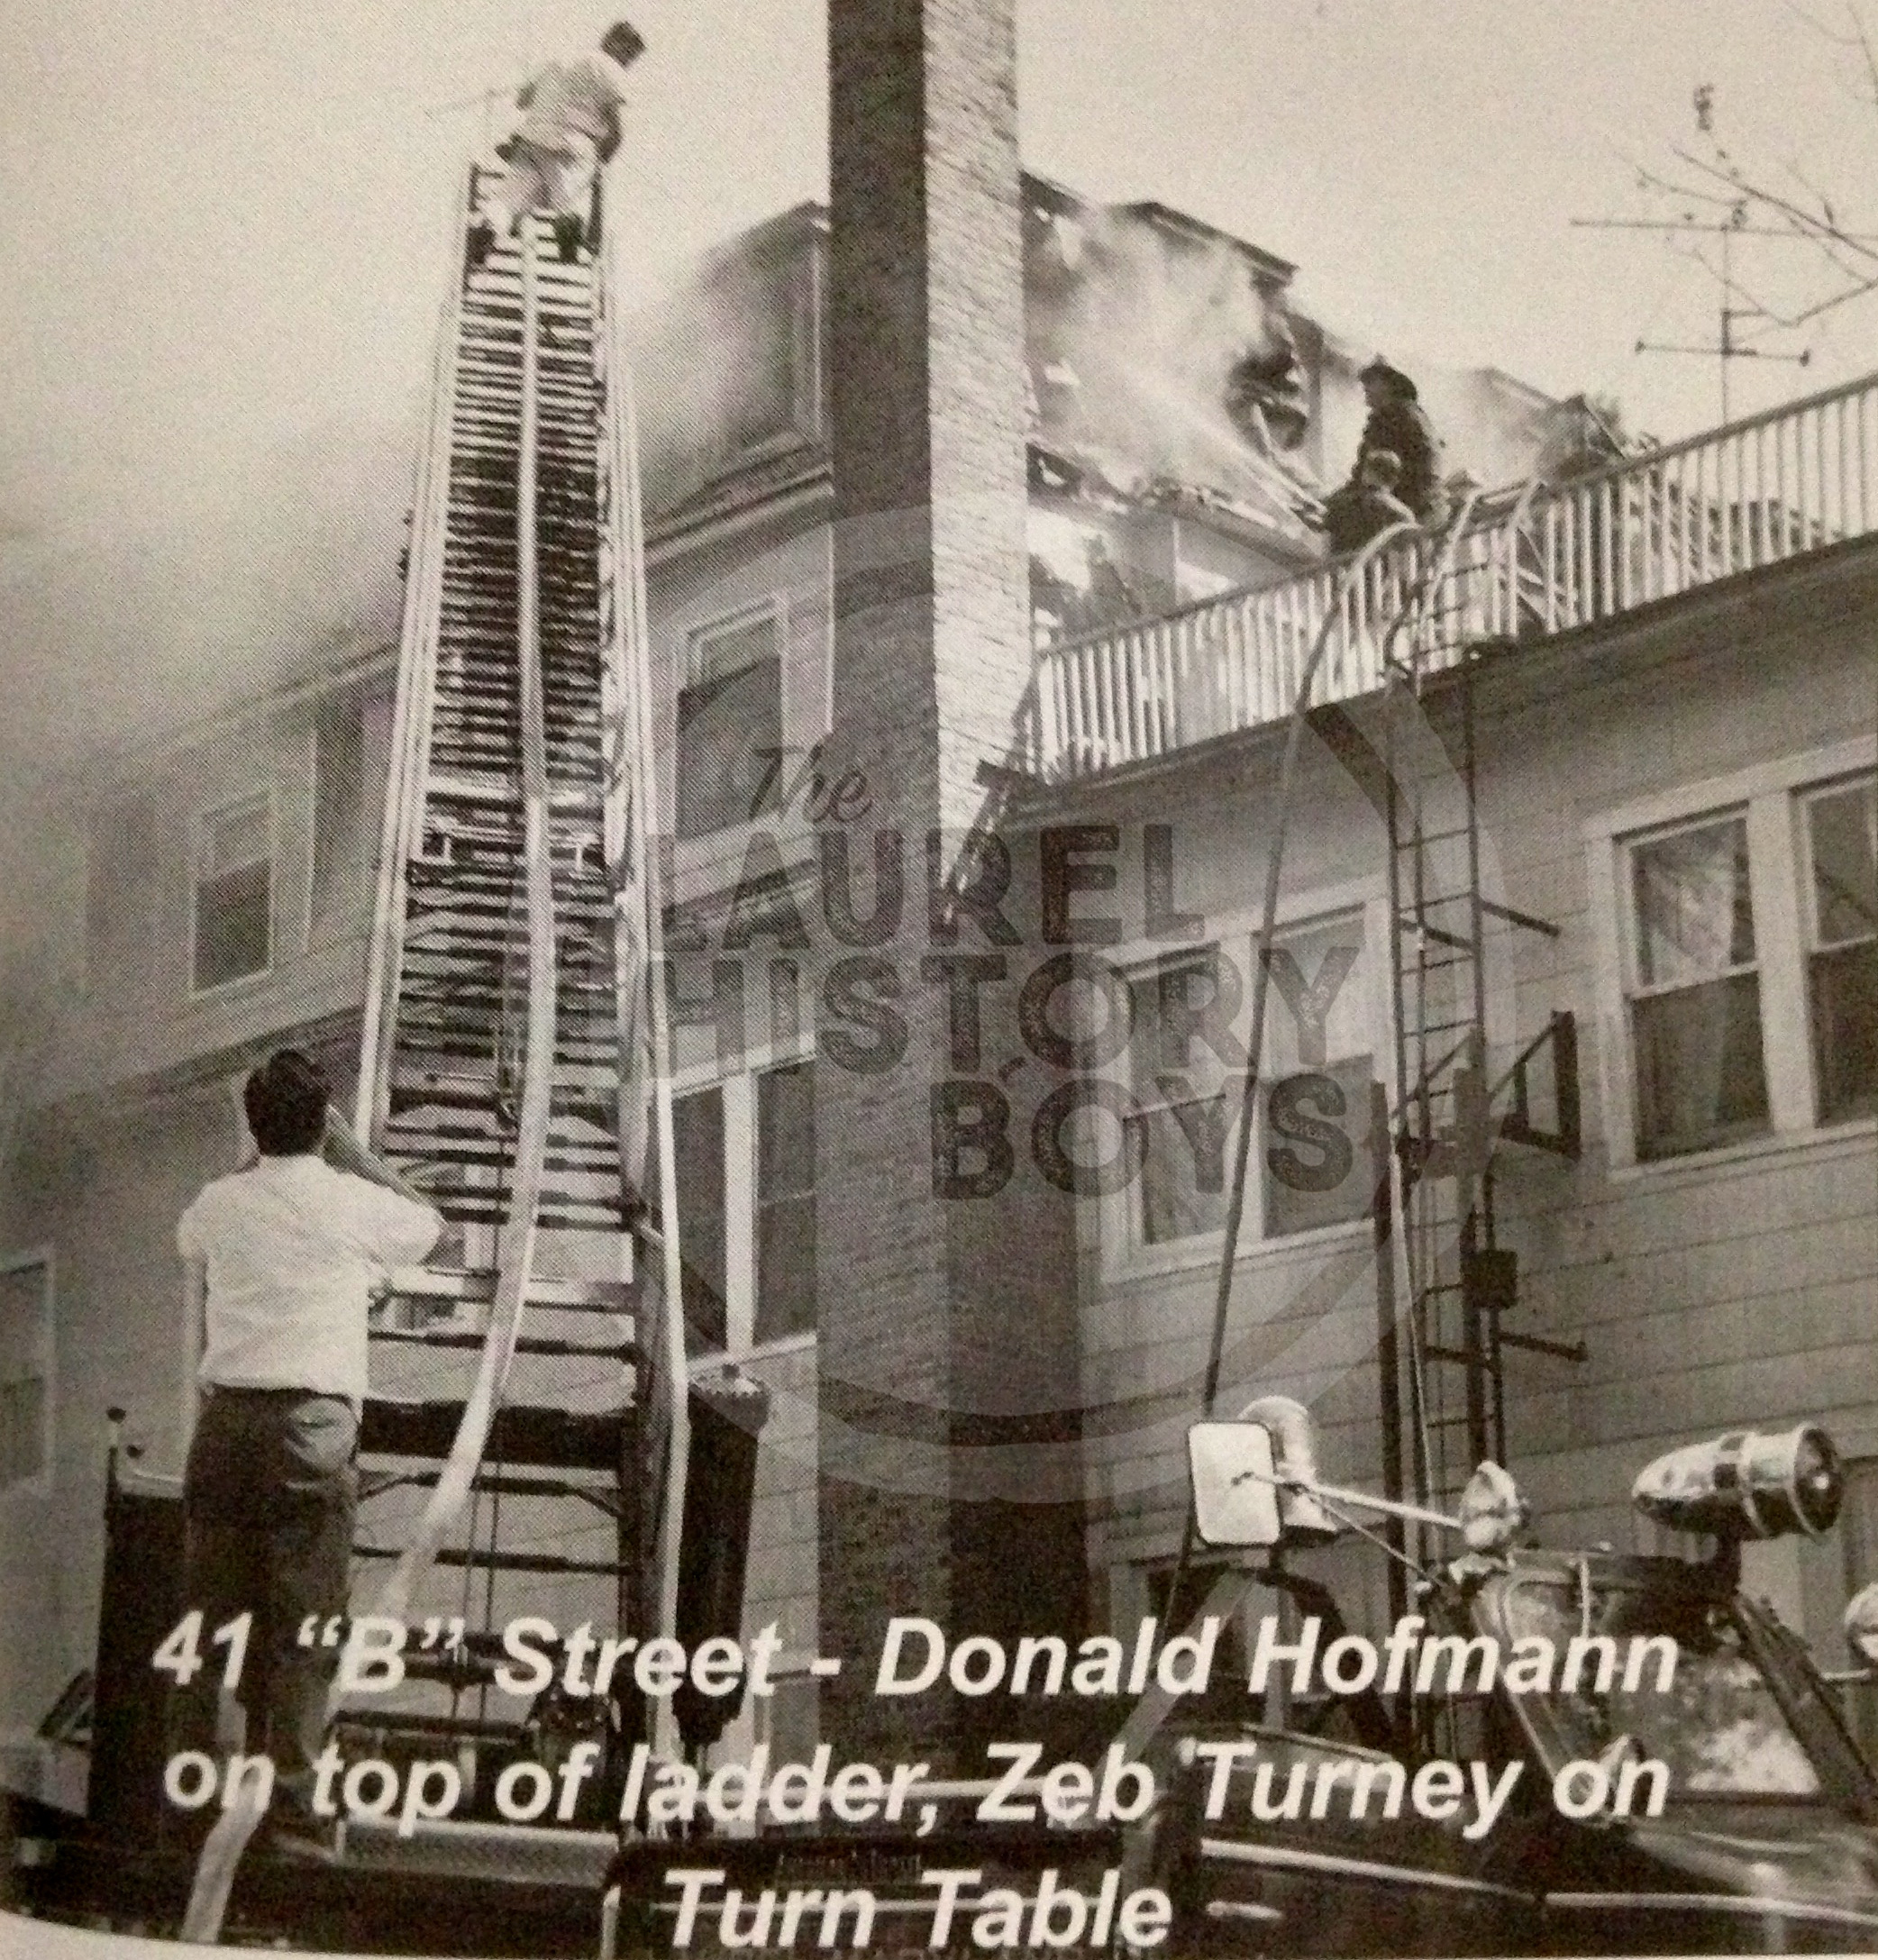 (Source: Laurel Volunteer Fire Department 100th Anniversary book, 2002)